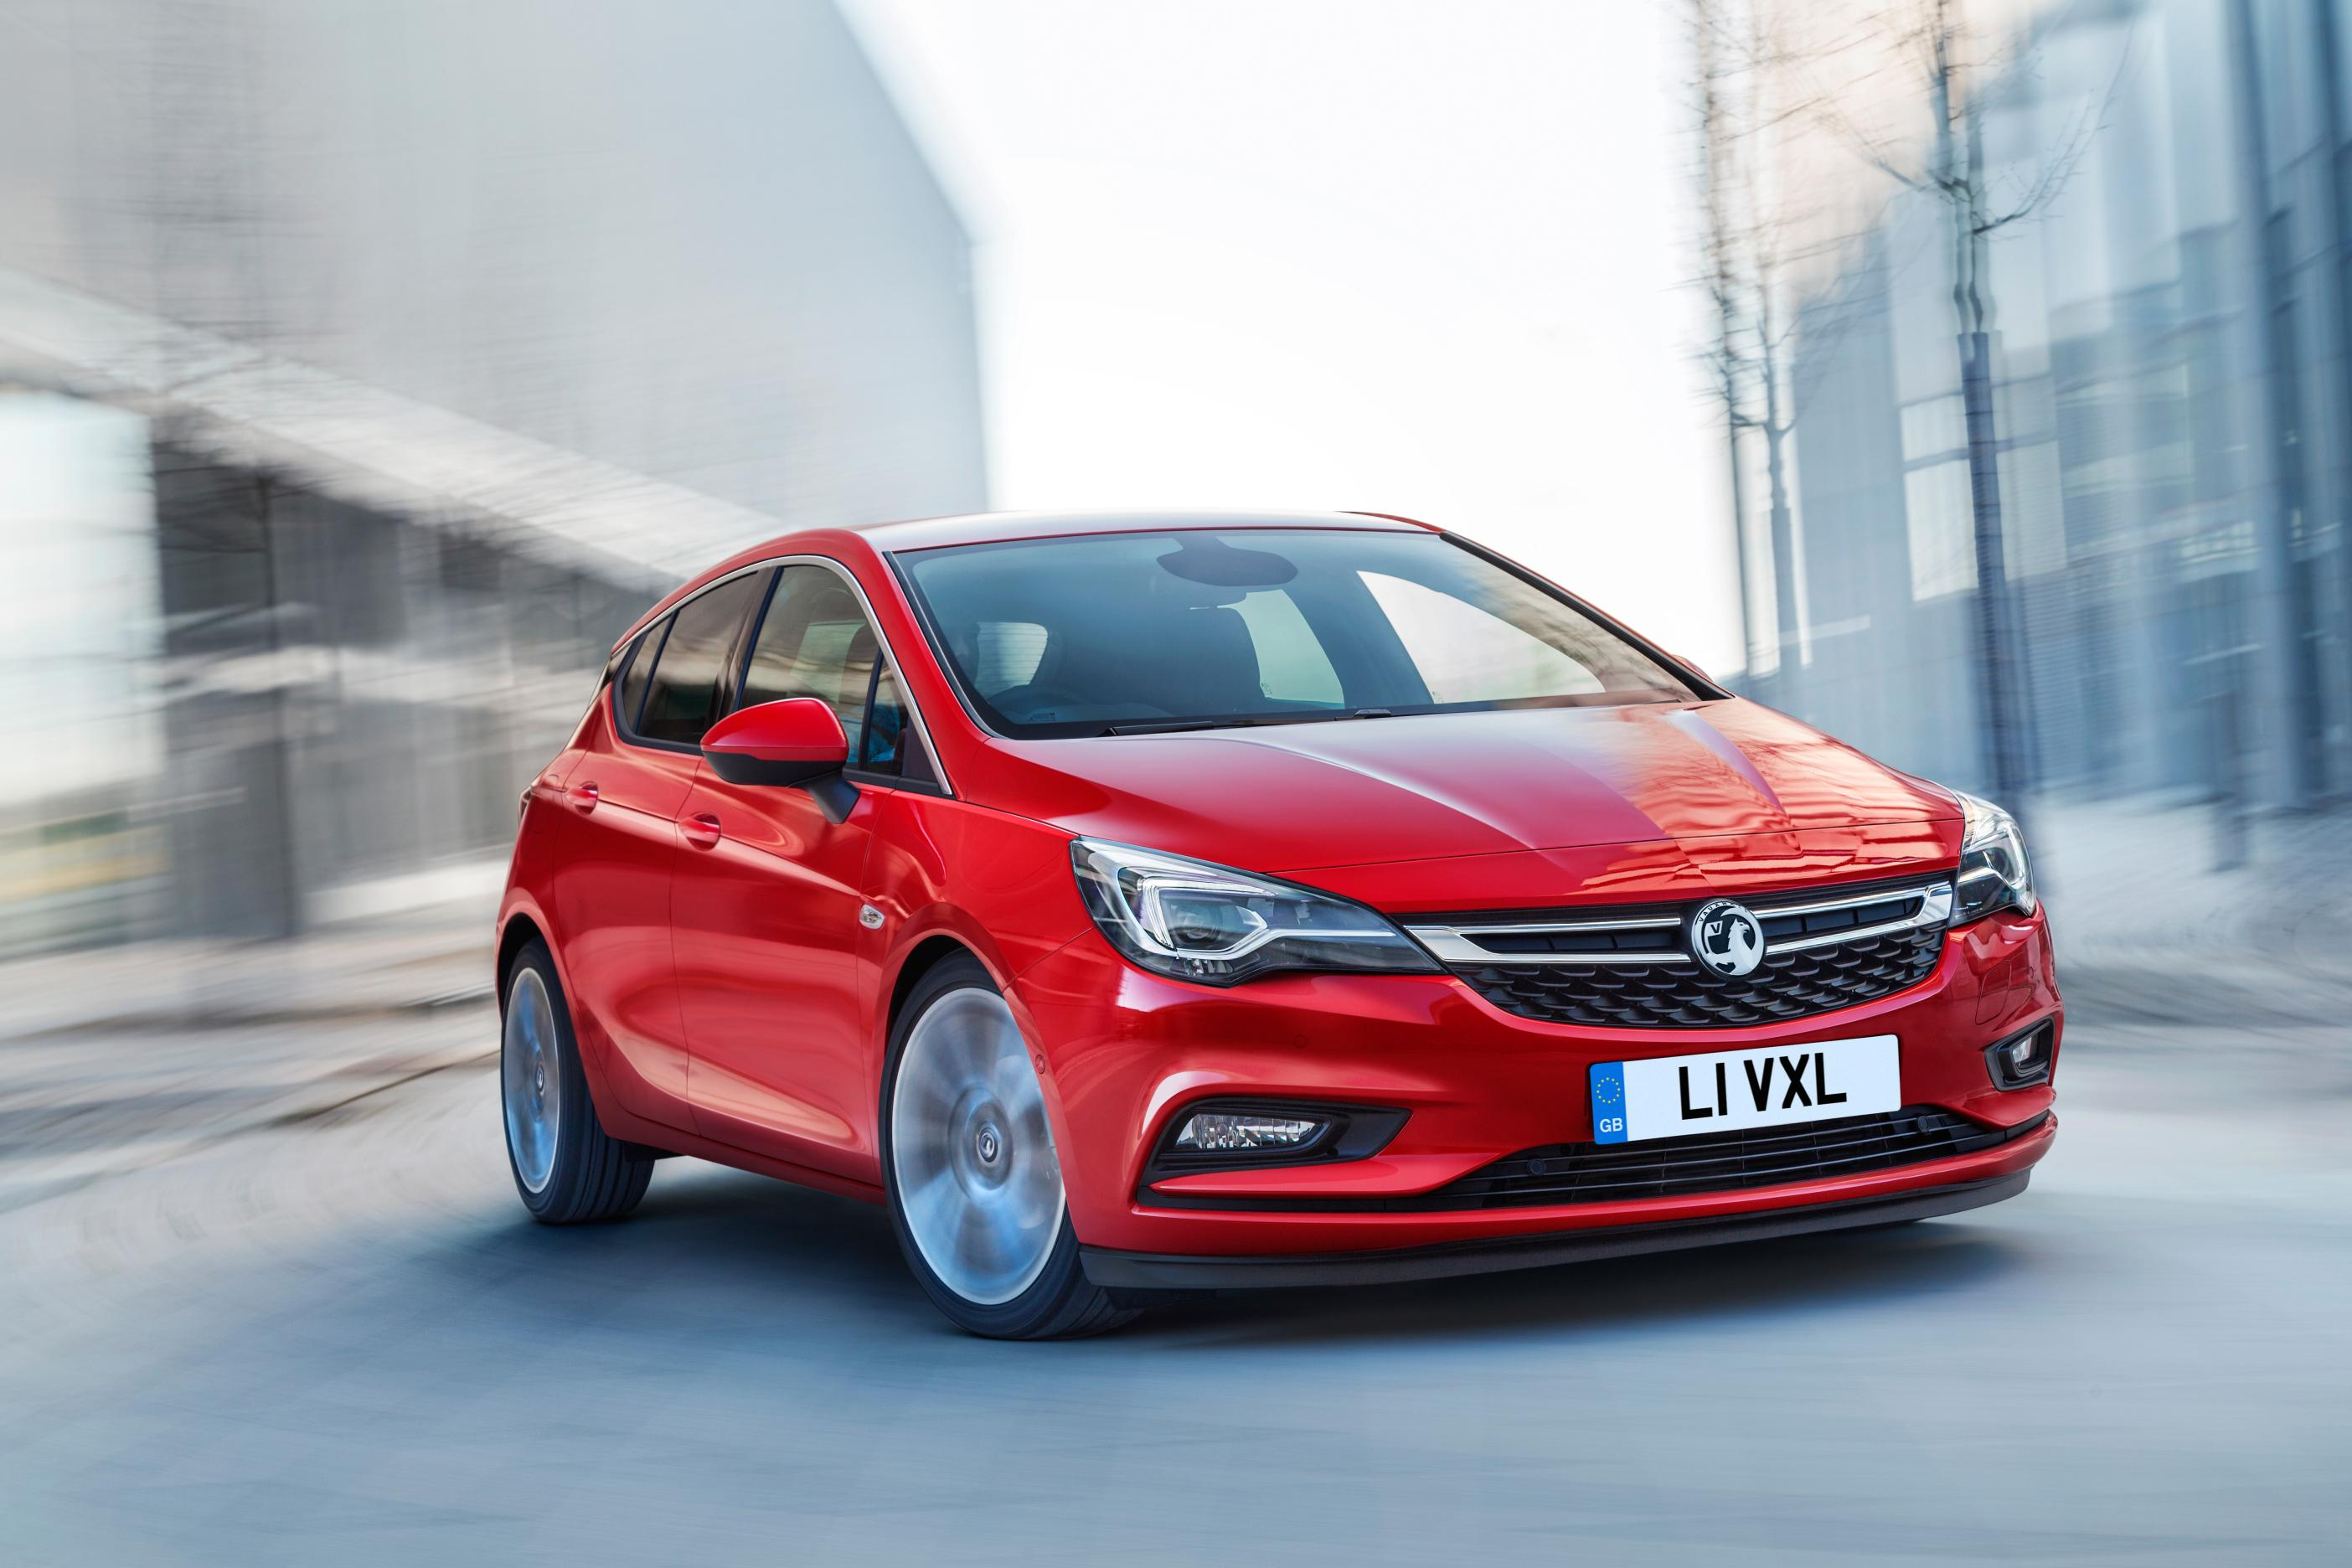 Hp Full Hd Wallpaper 2015 Opel Astra K Is Here To Stay Autoevolution